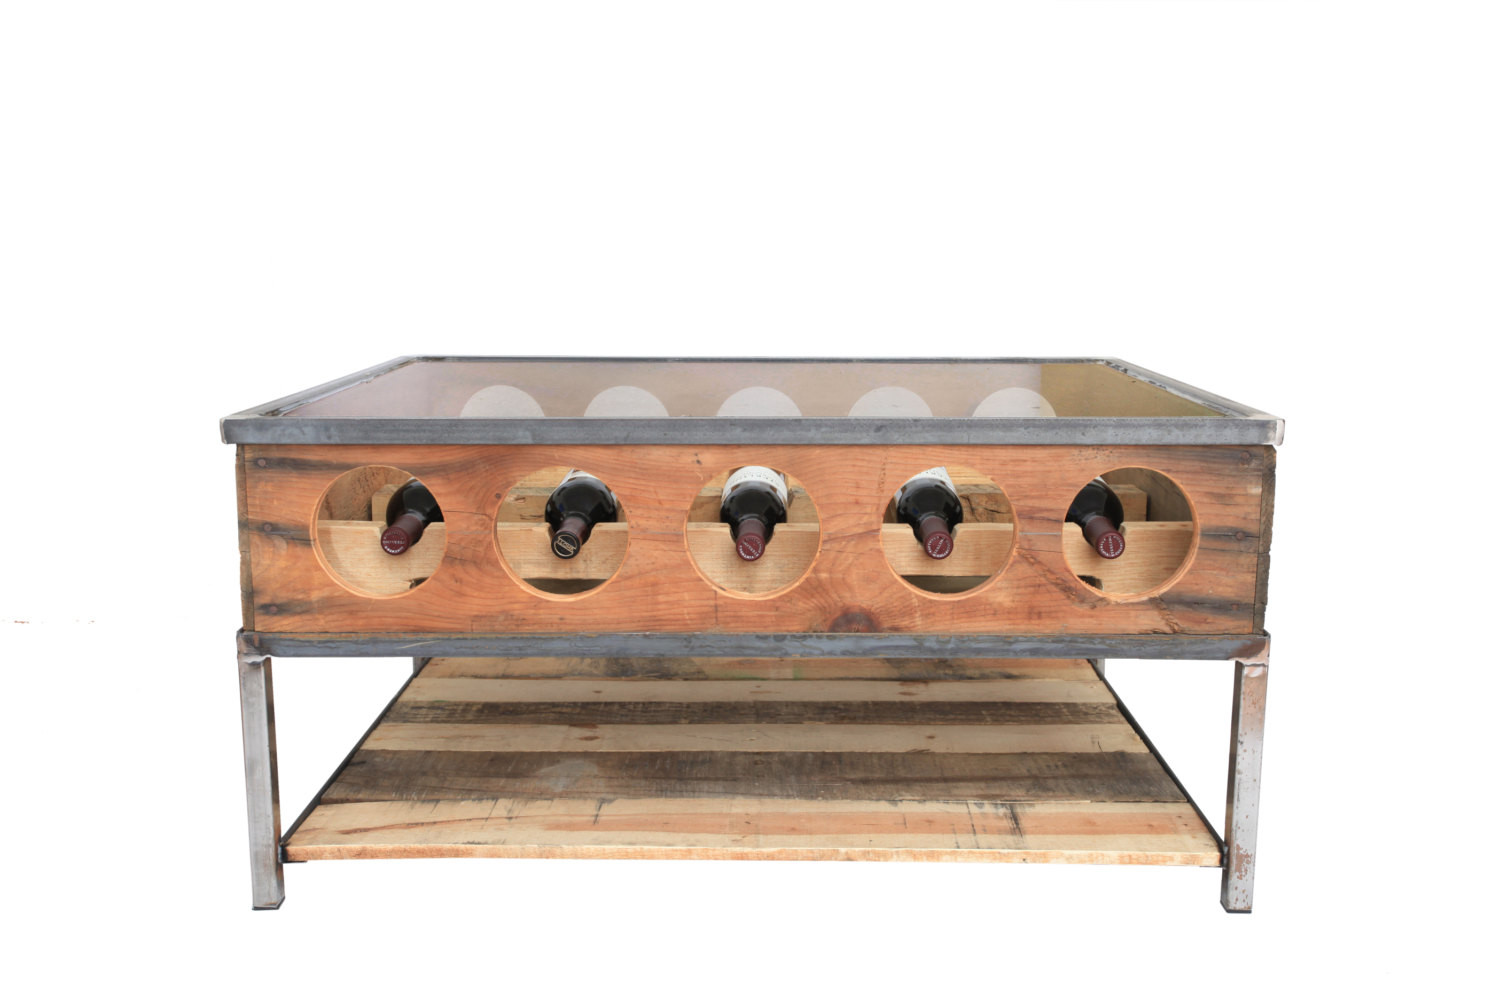 Best ideas about Wine Rack Coffee Table . Save or Pin Wine rack coffee Table on sale Now.